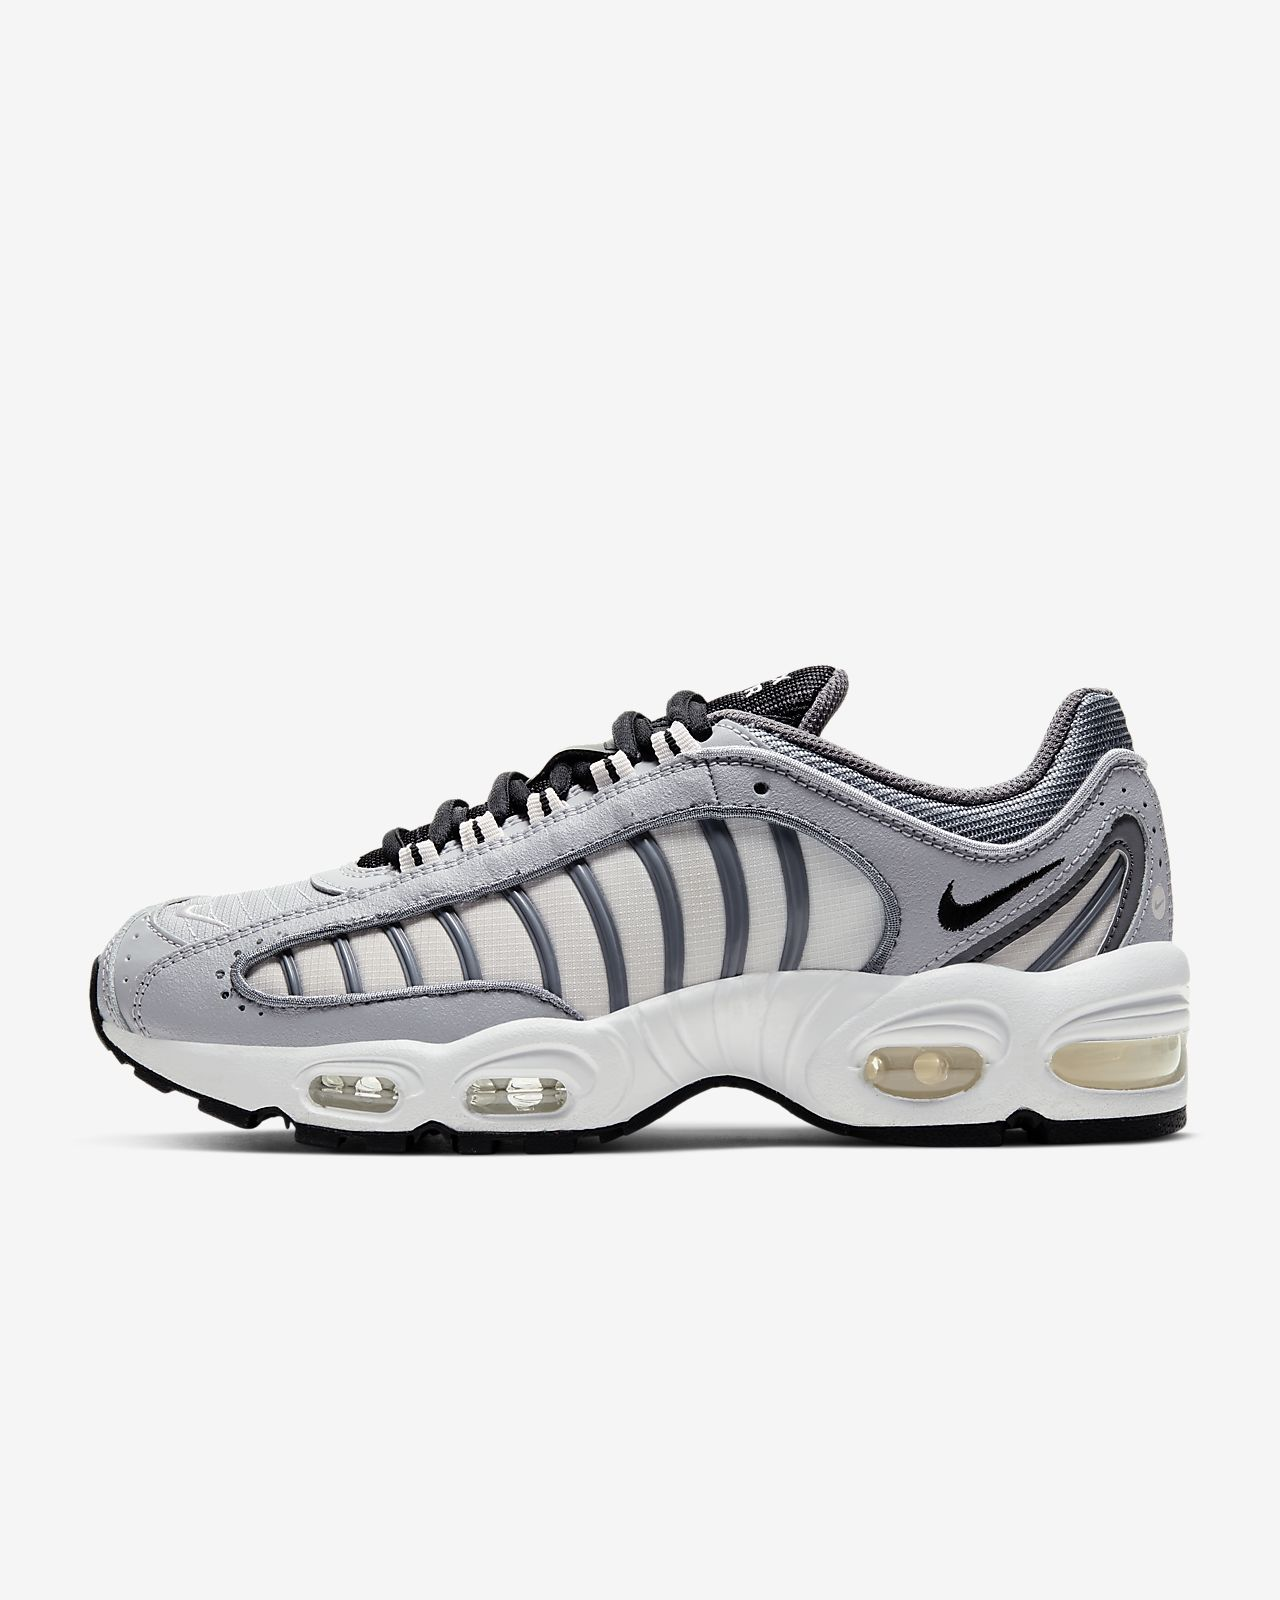 Nike Air Max Tailwind IV trainers in white | ASOS